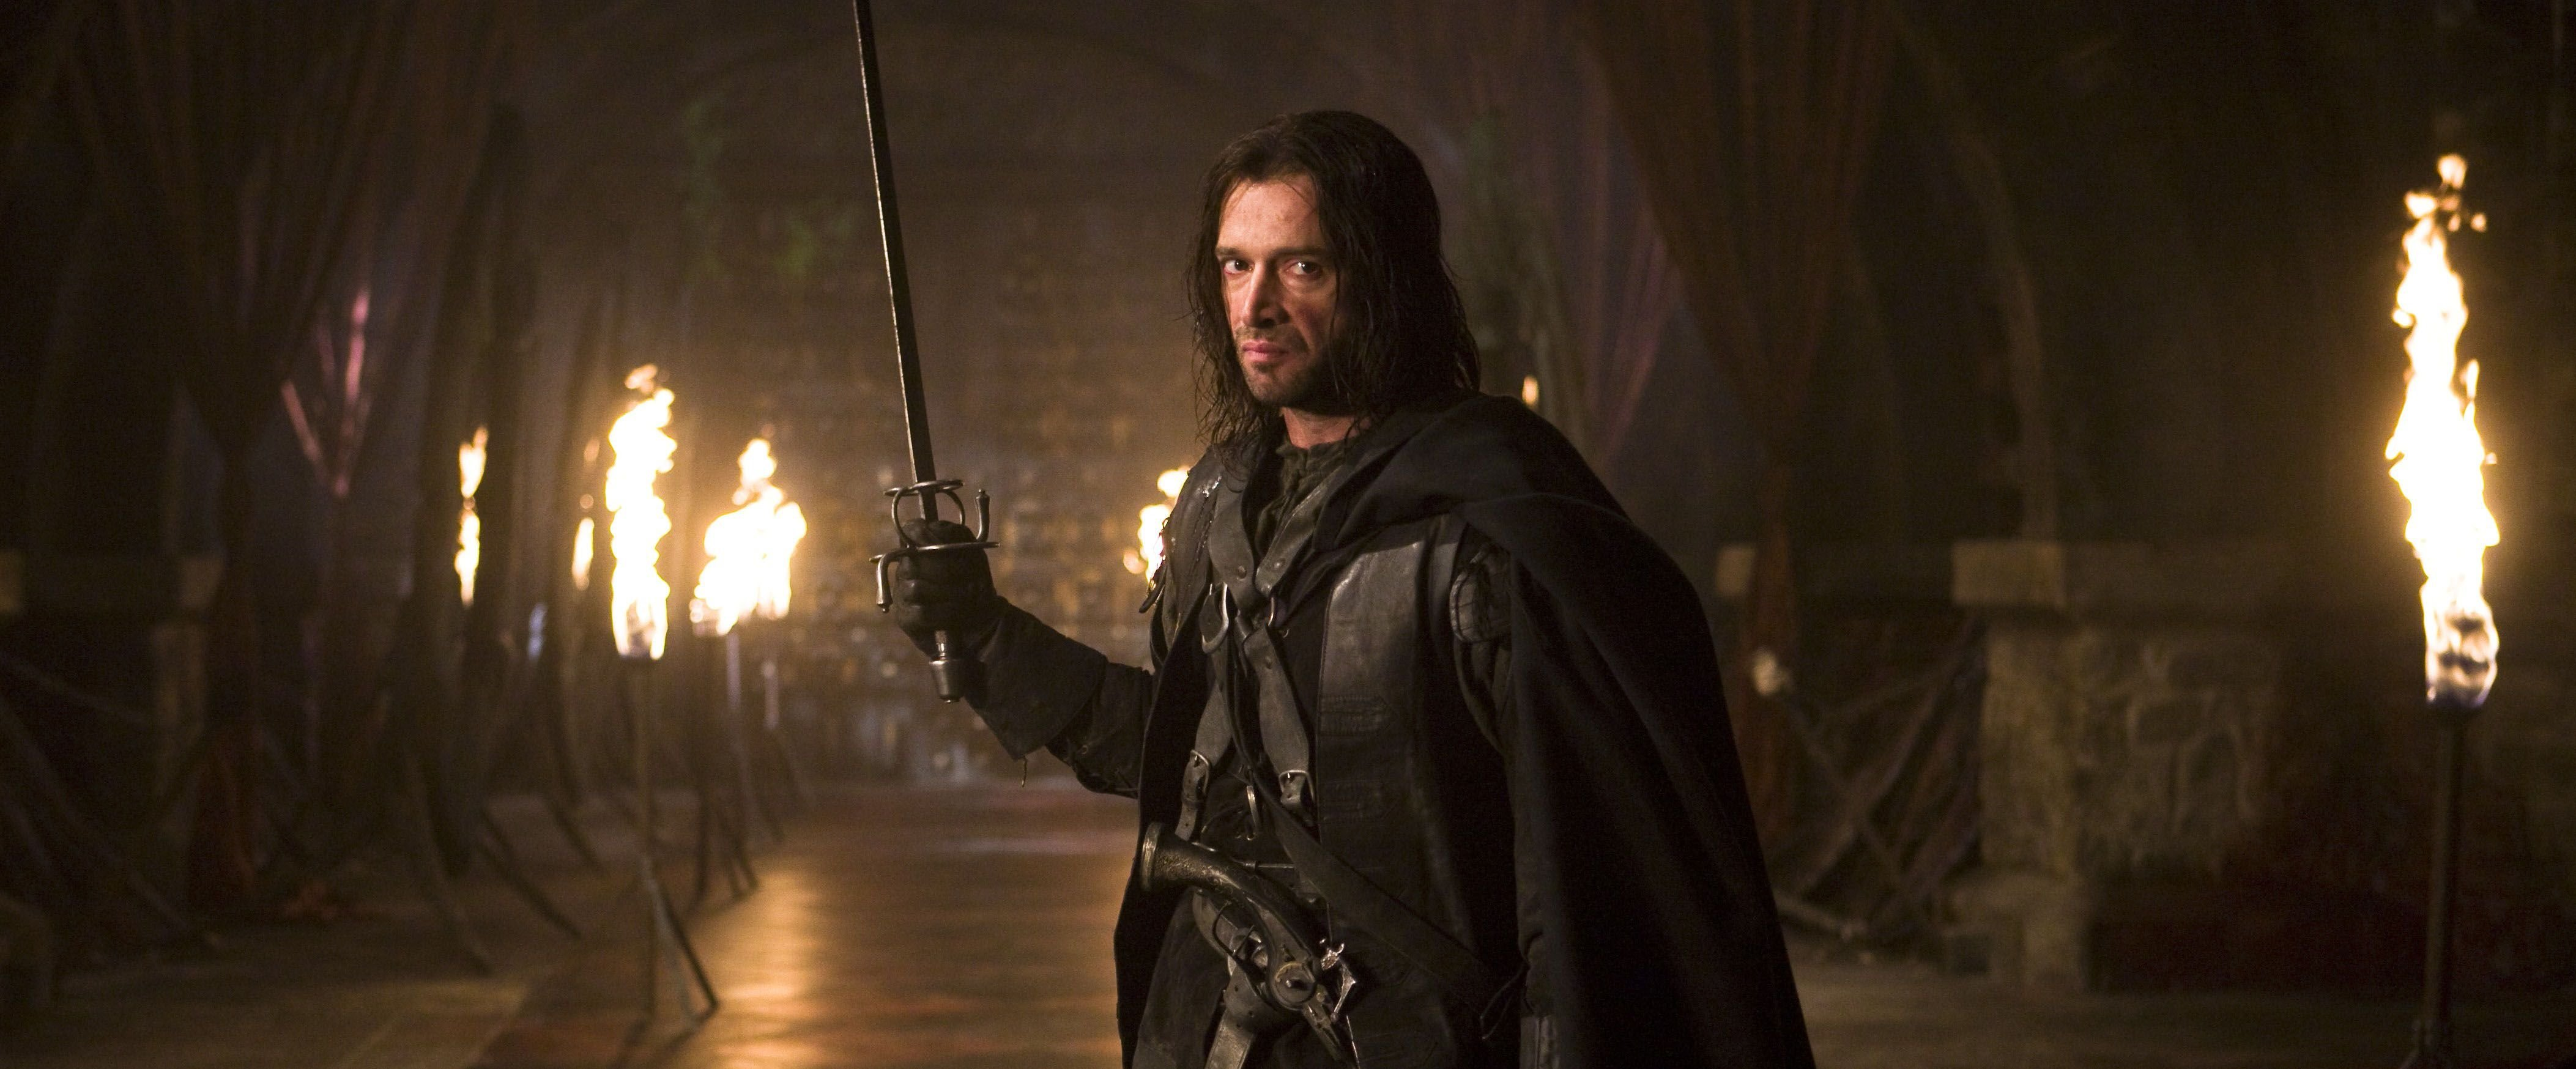 An image from Solomon Kane